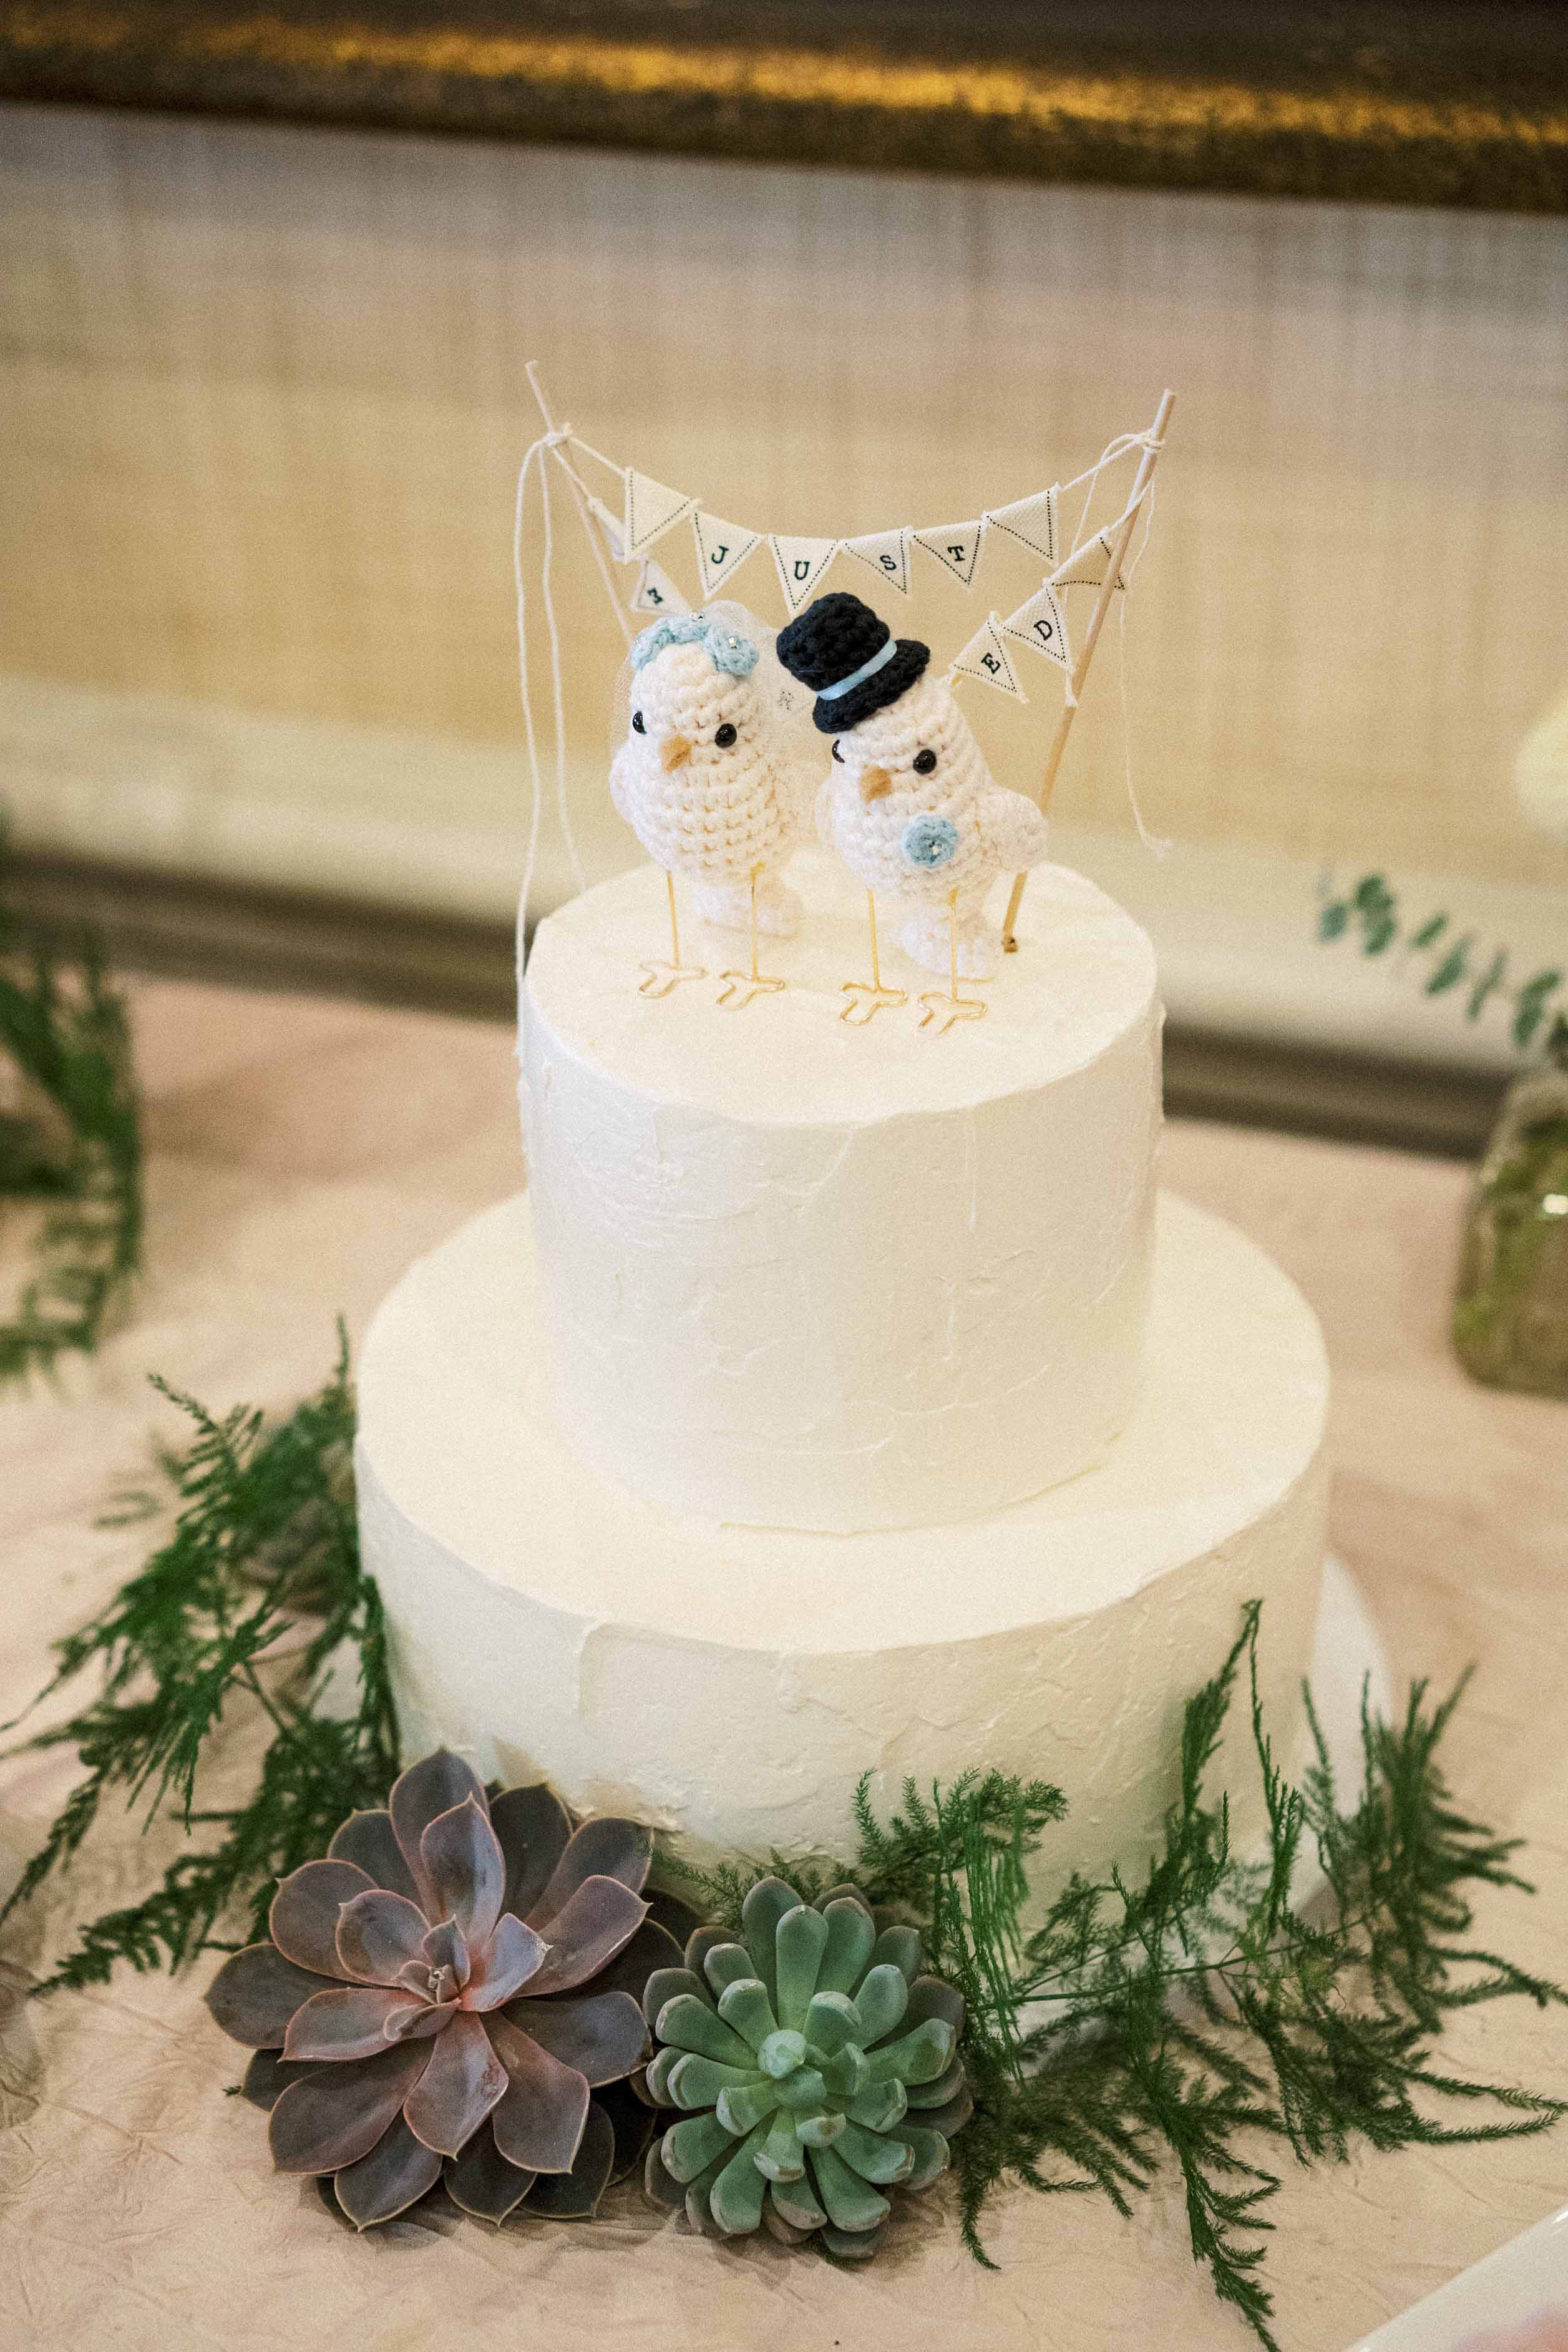 Wedding cake with birds topper